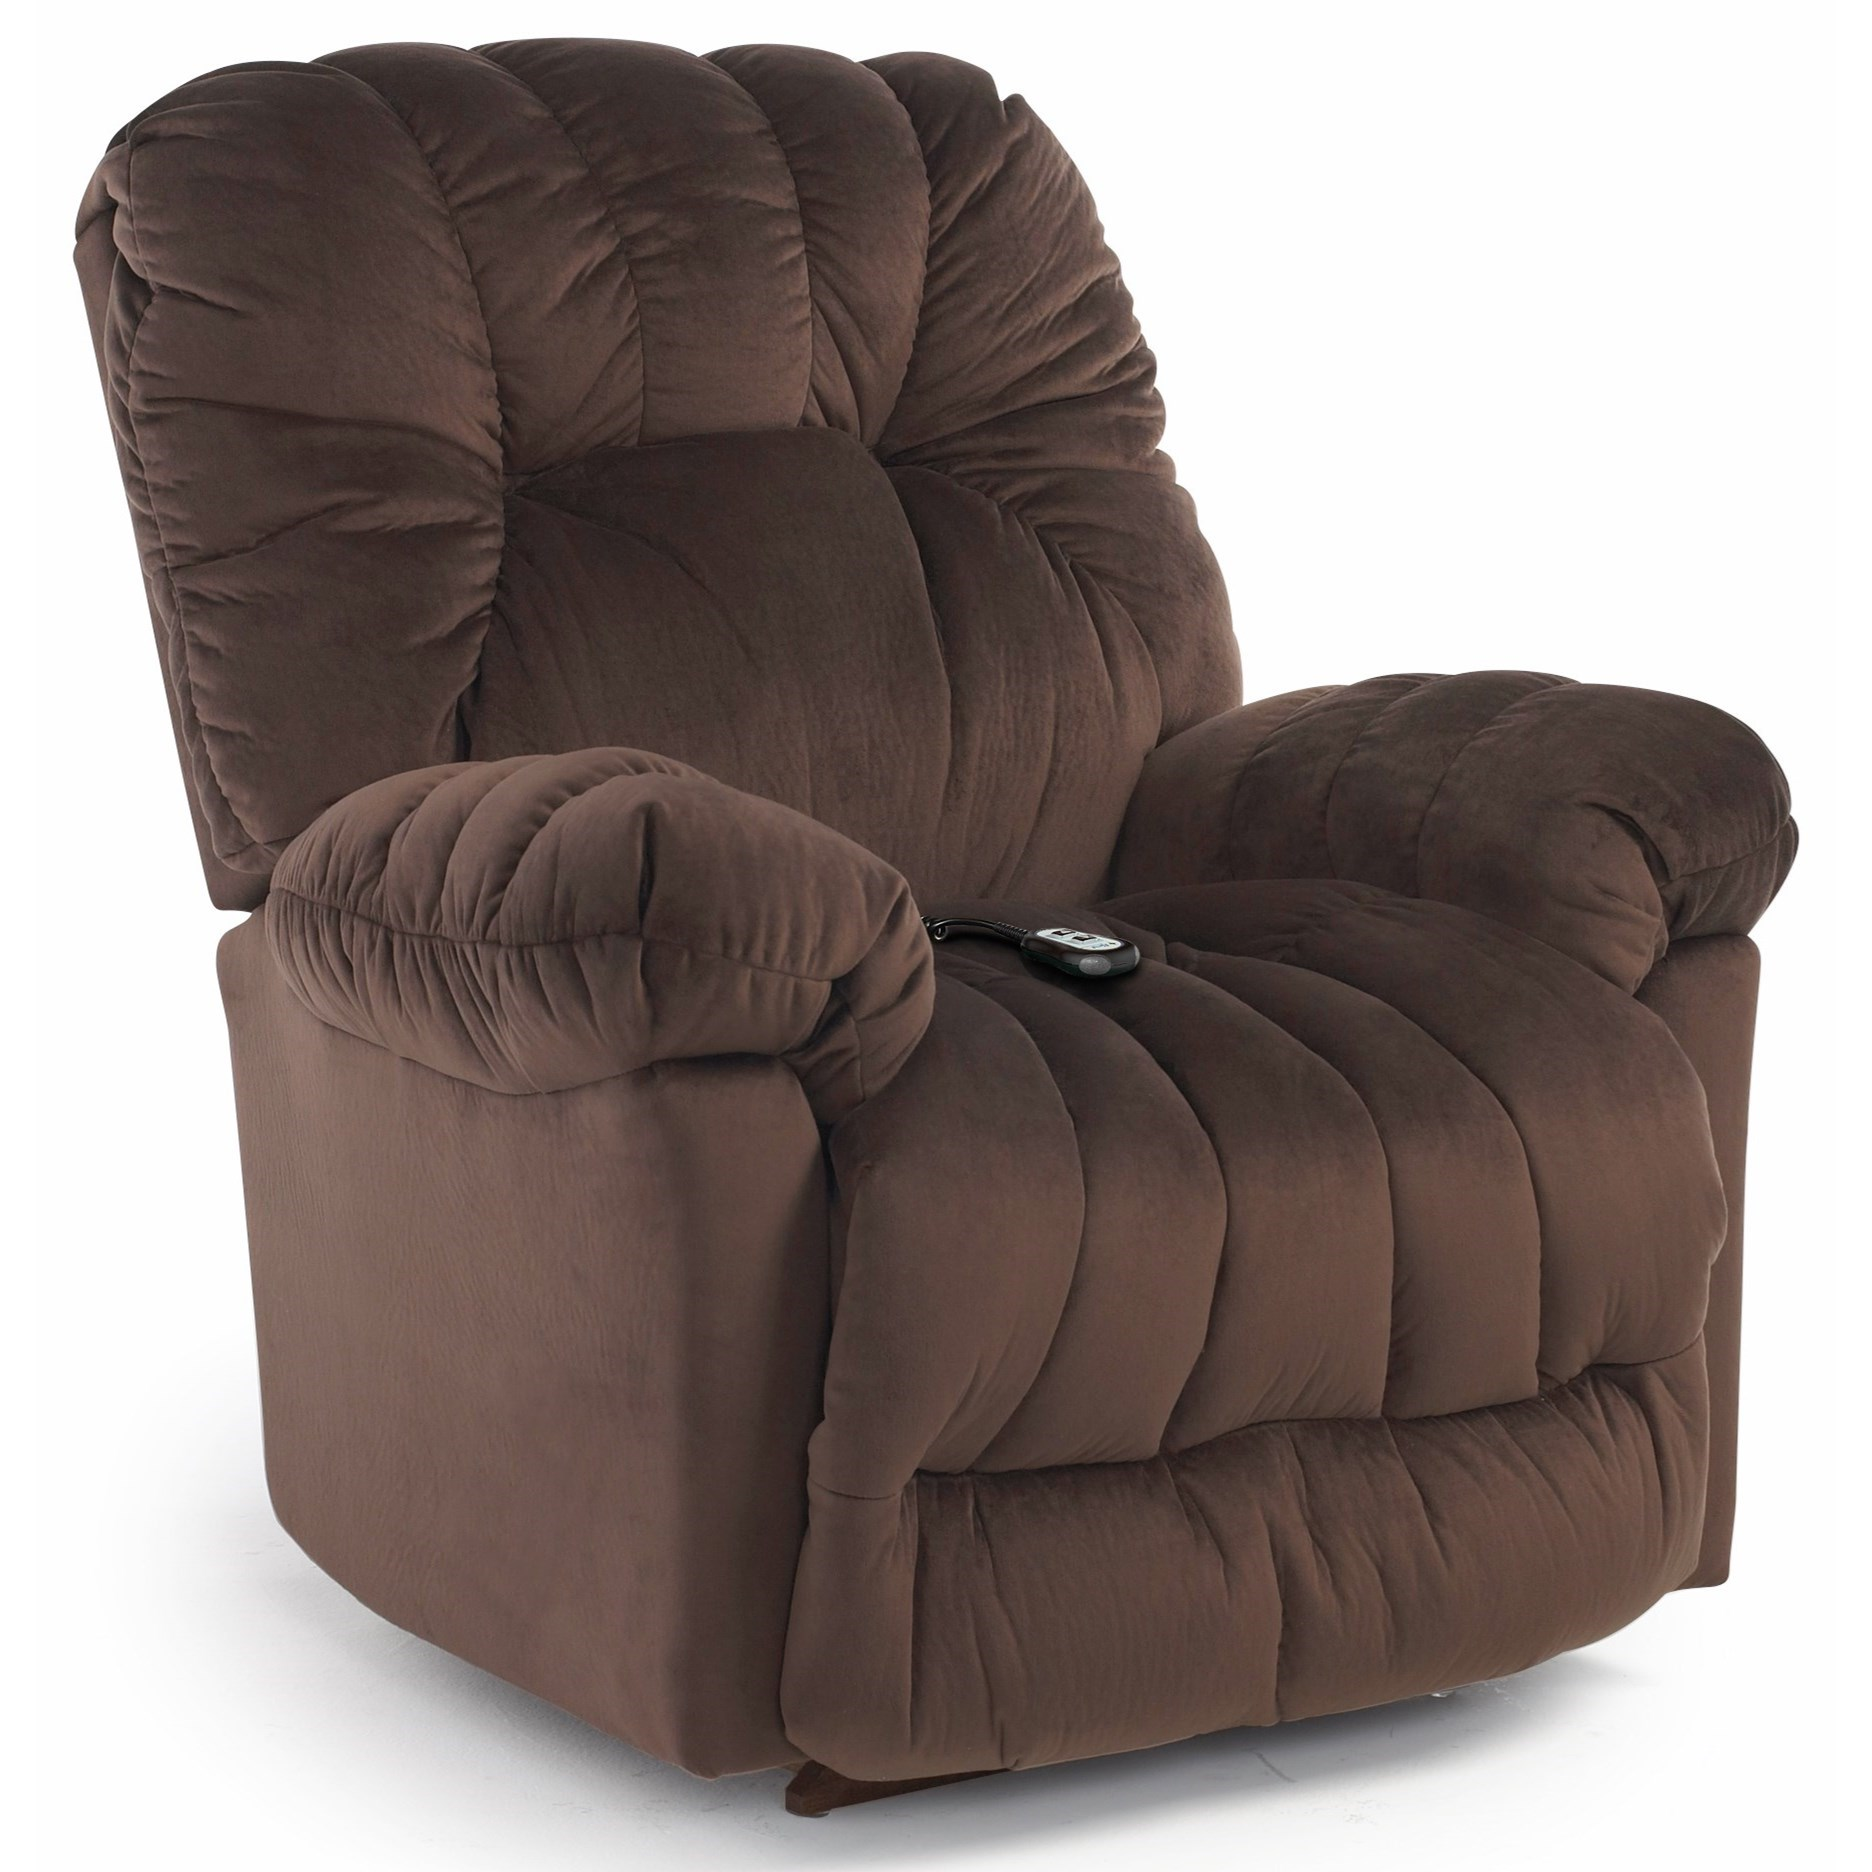 Best Home Furnishings Recliners - Medium Conen Power Lift Recliner - Item Number: 9MW91